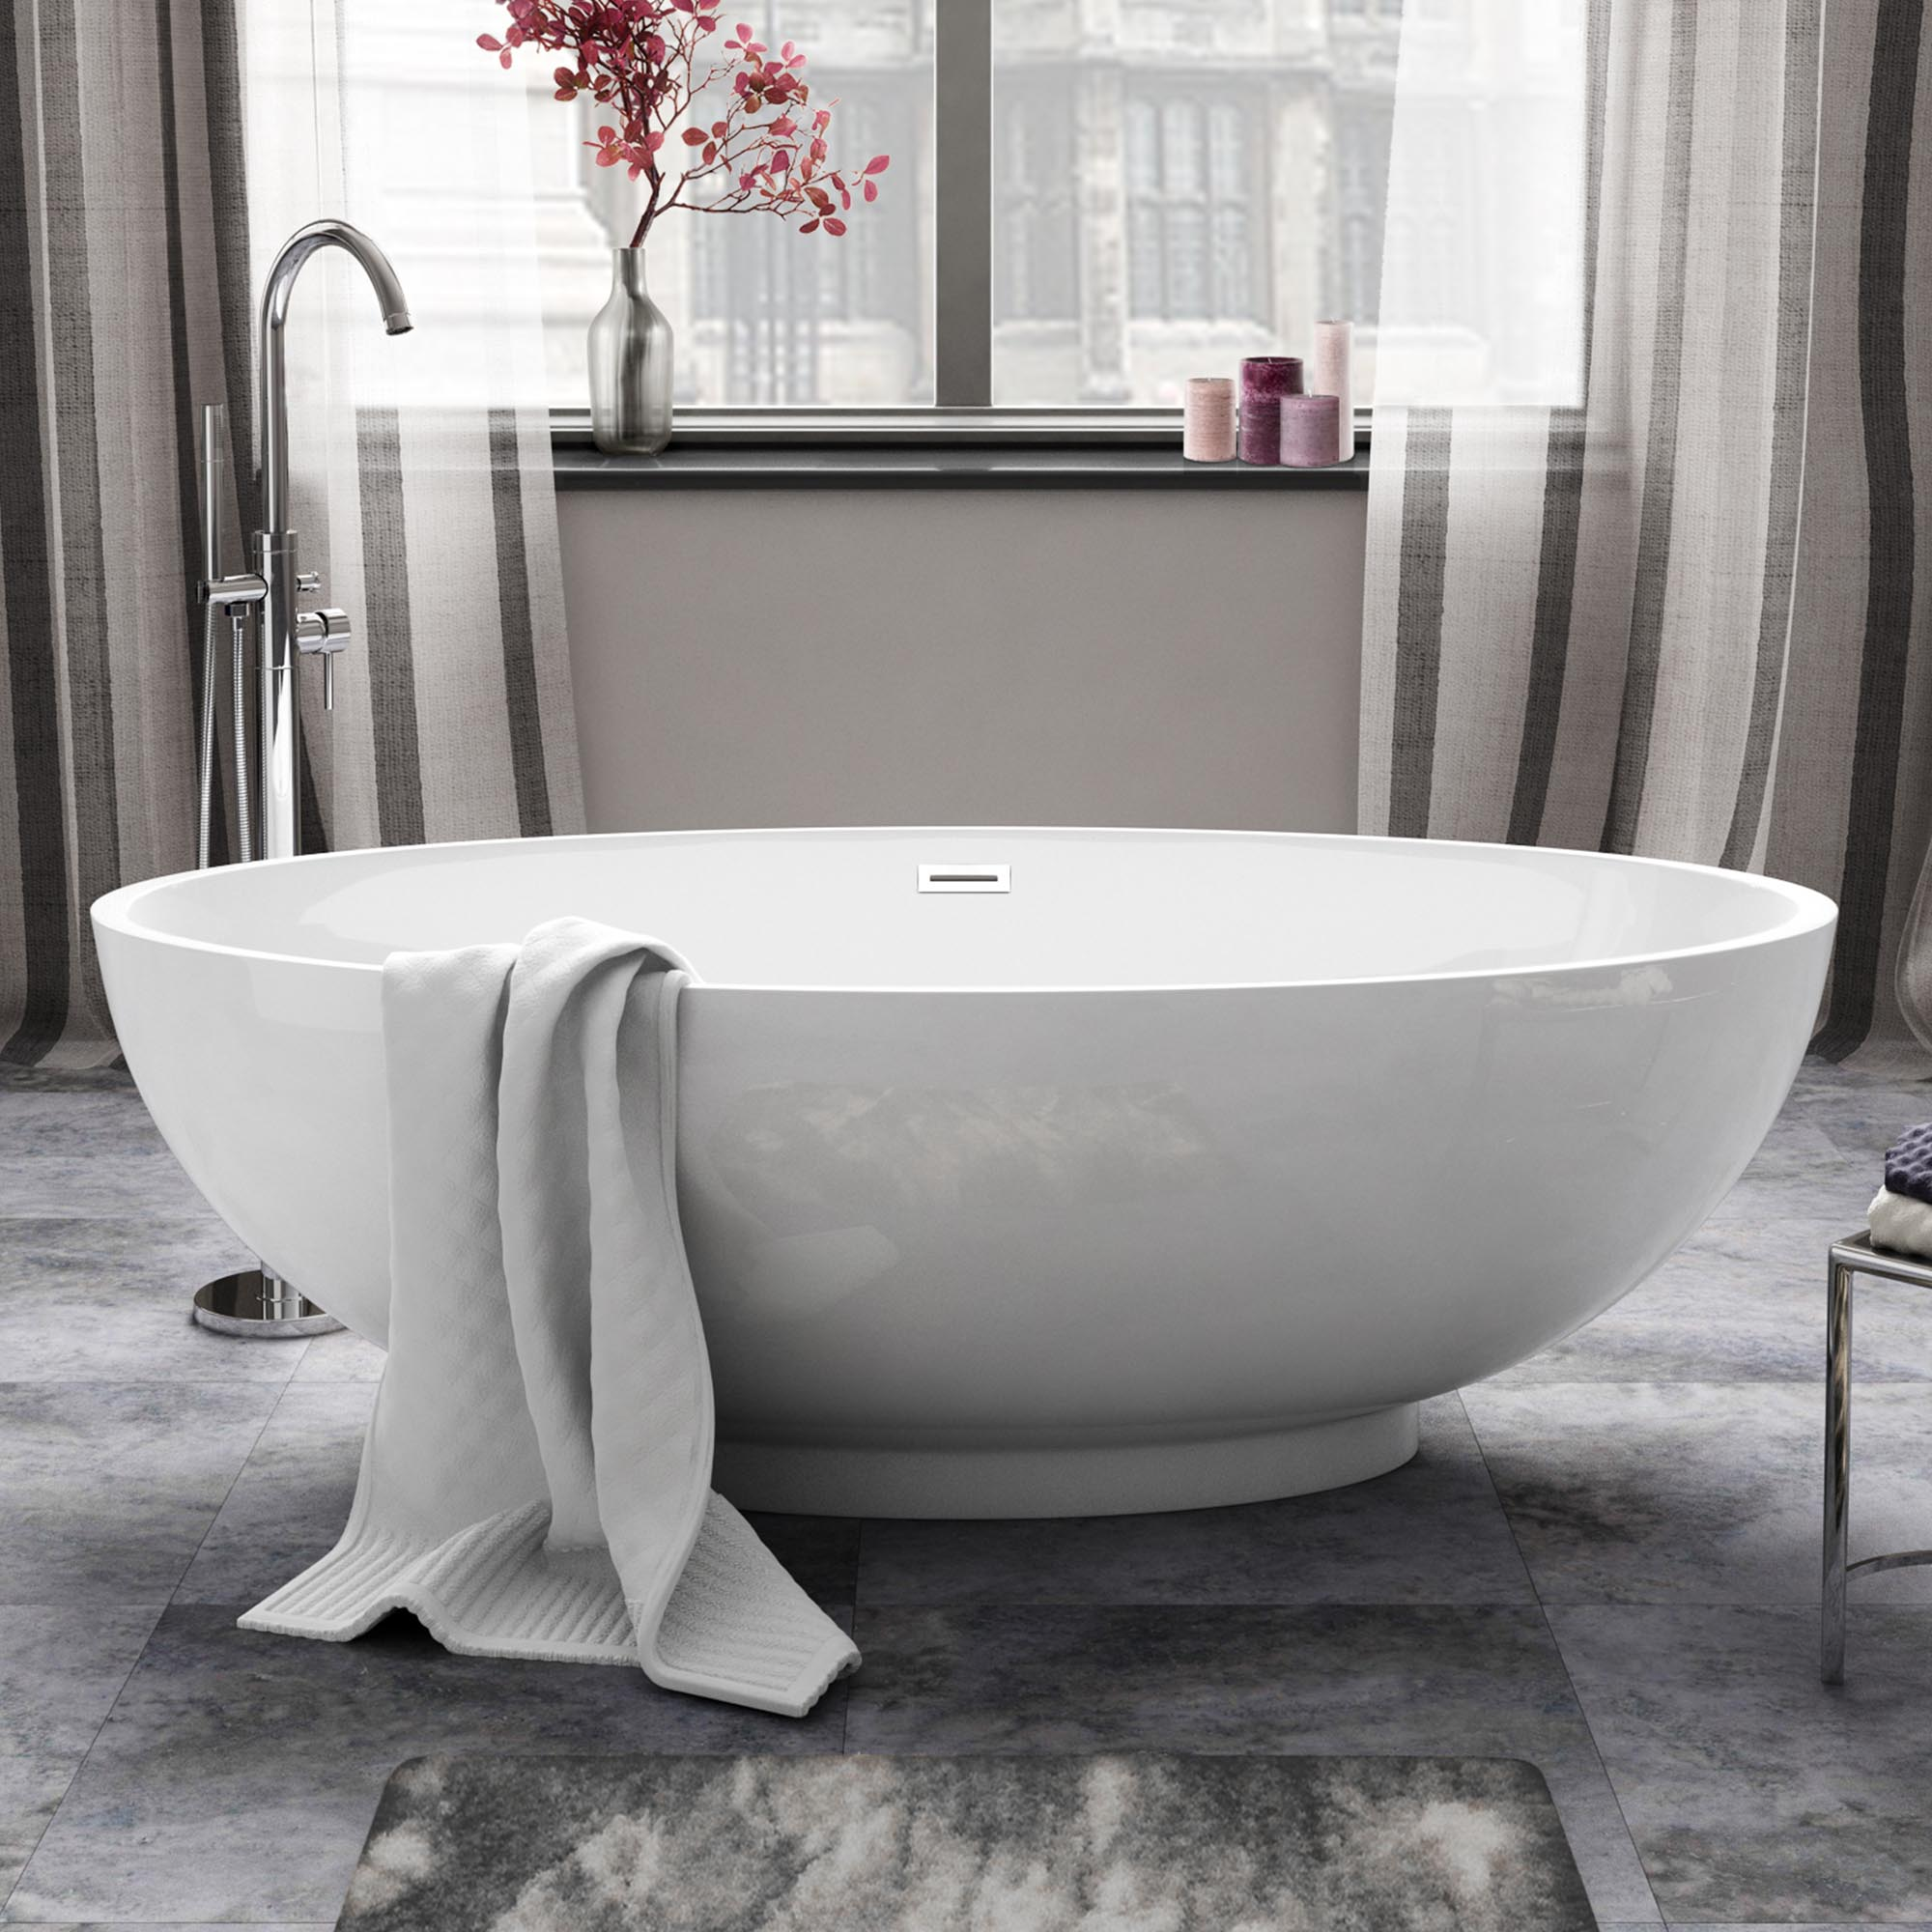 Designer bathroom freestanding modern roll top baths ebay - Designer bathroom ...